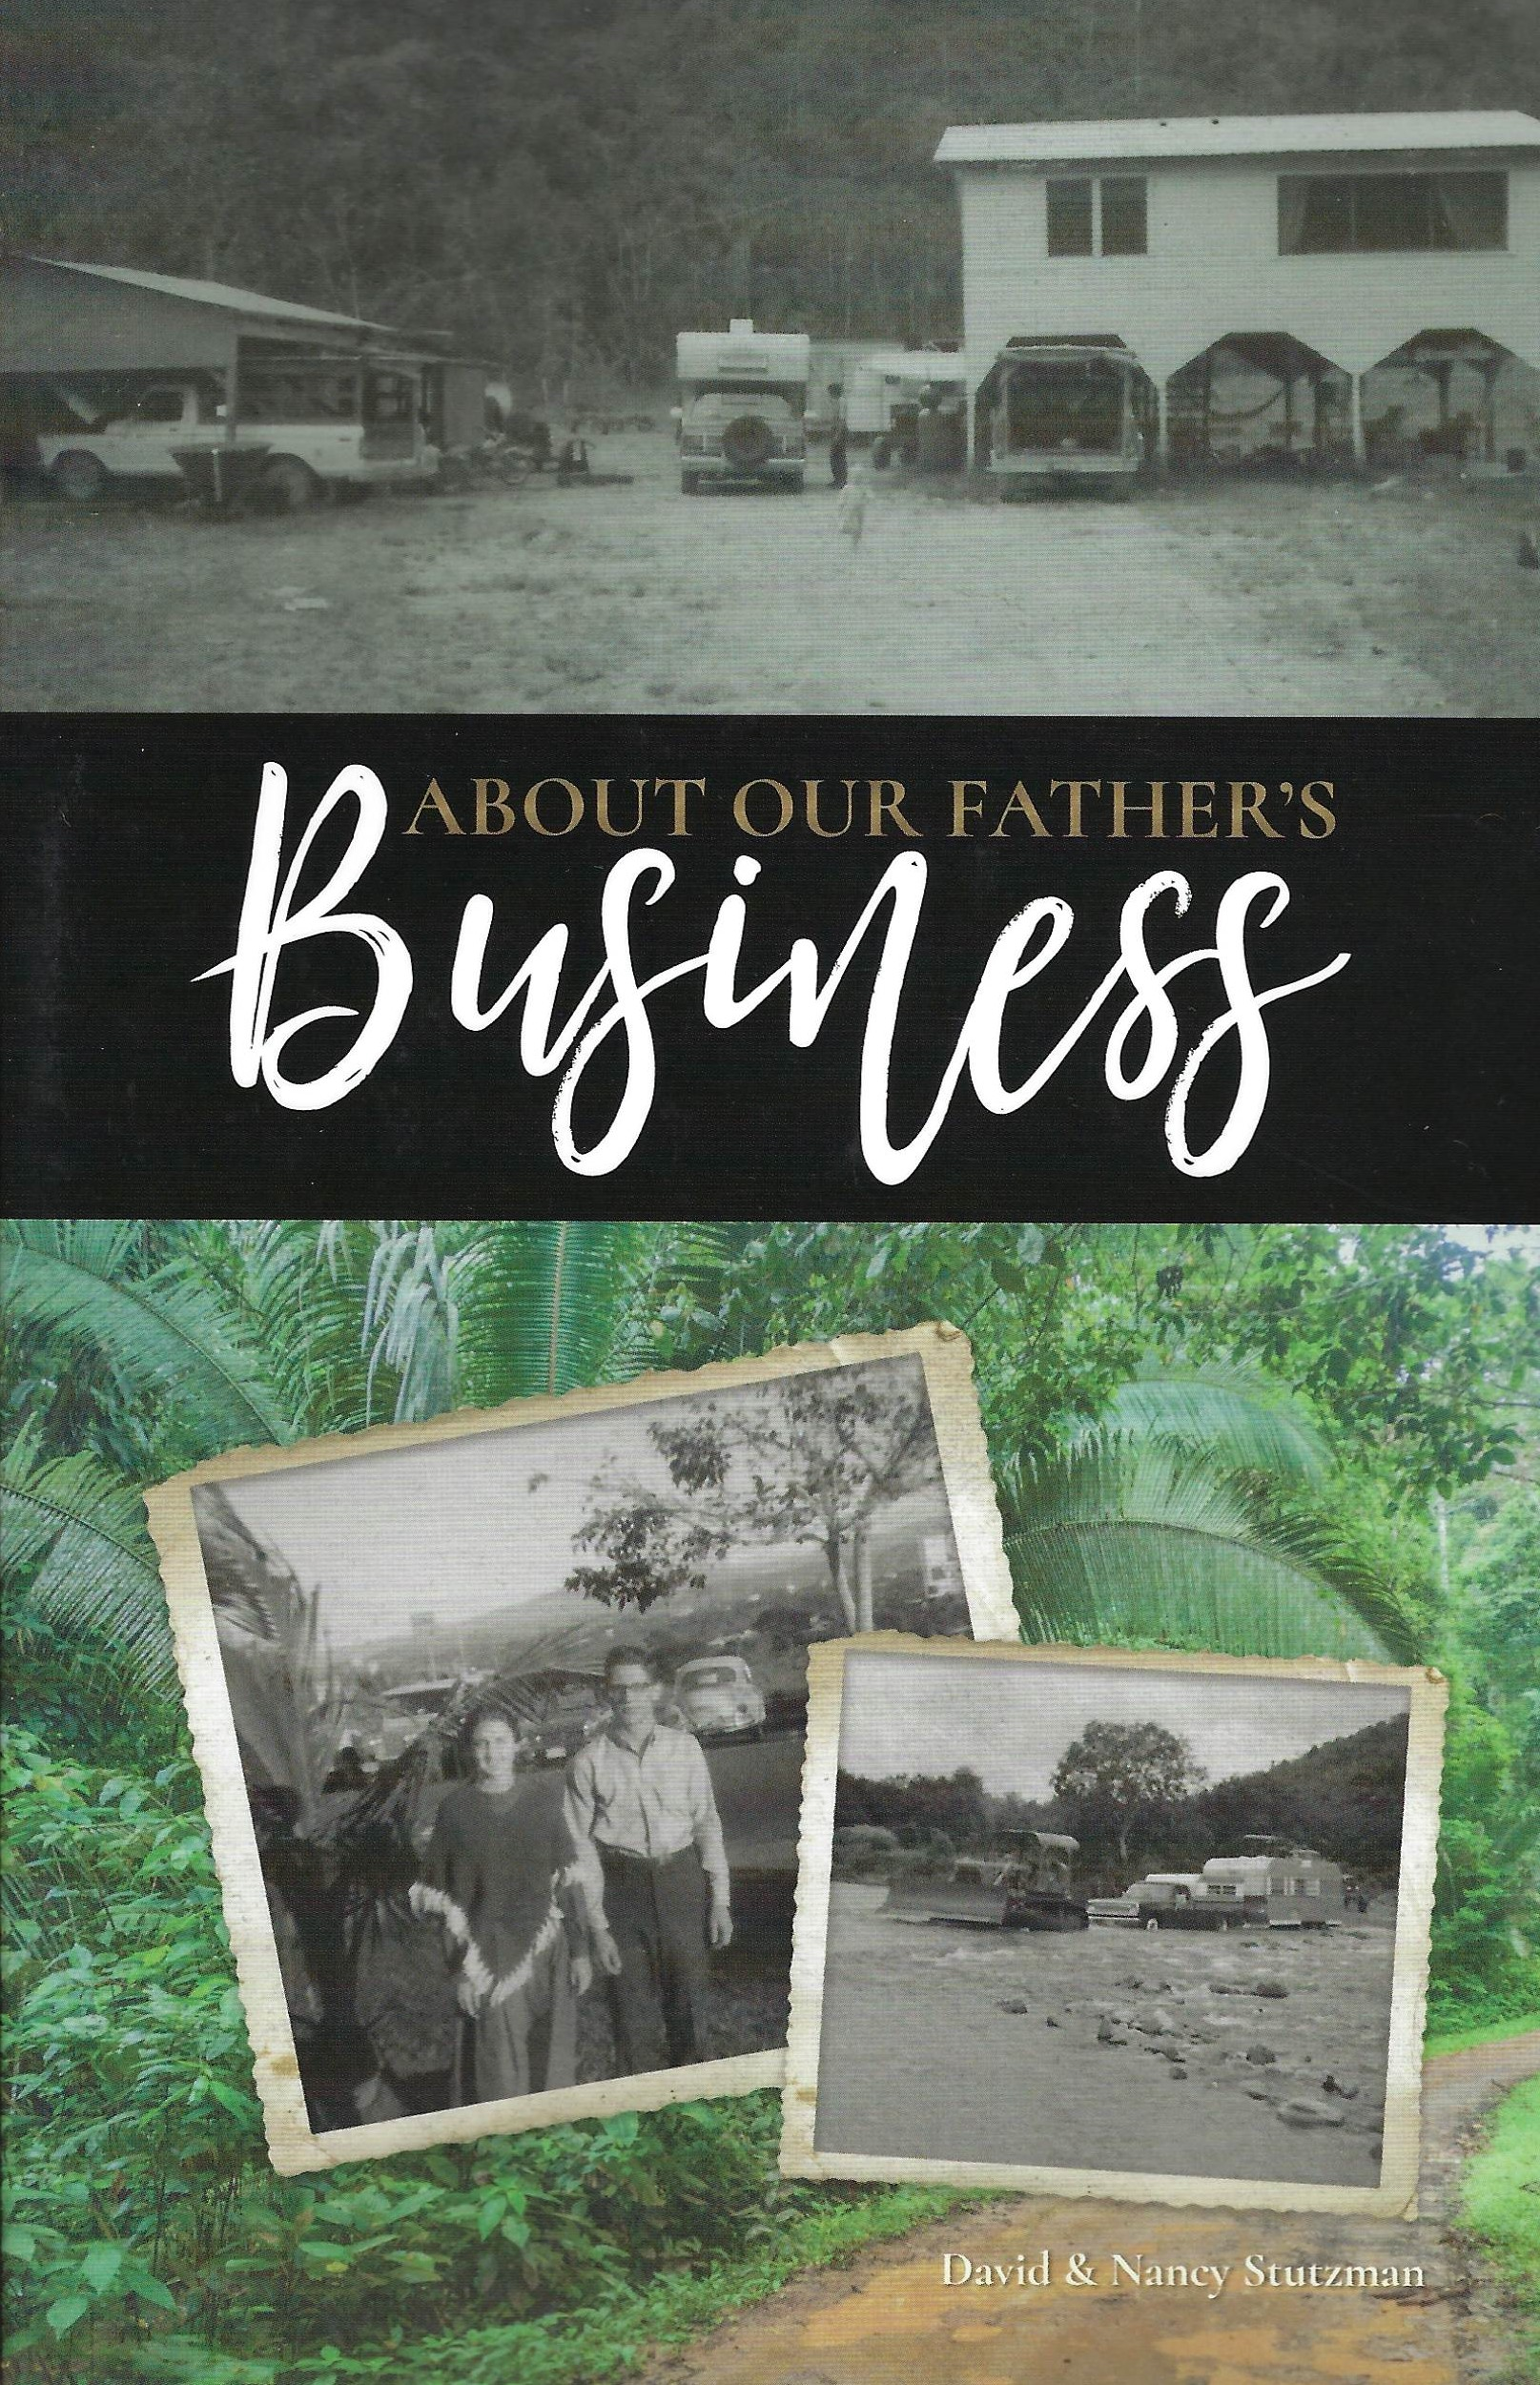 ABOUT OUR FATHER'S BUSINESS David and Nancy Stutzman